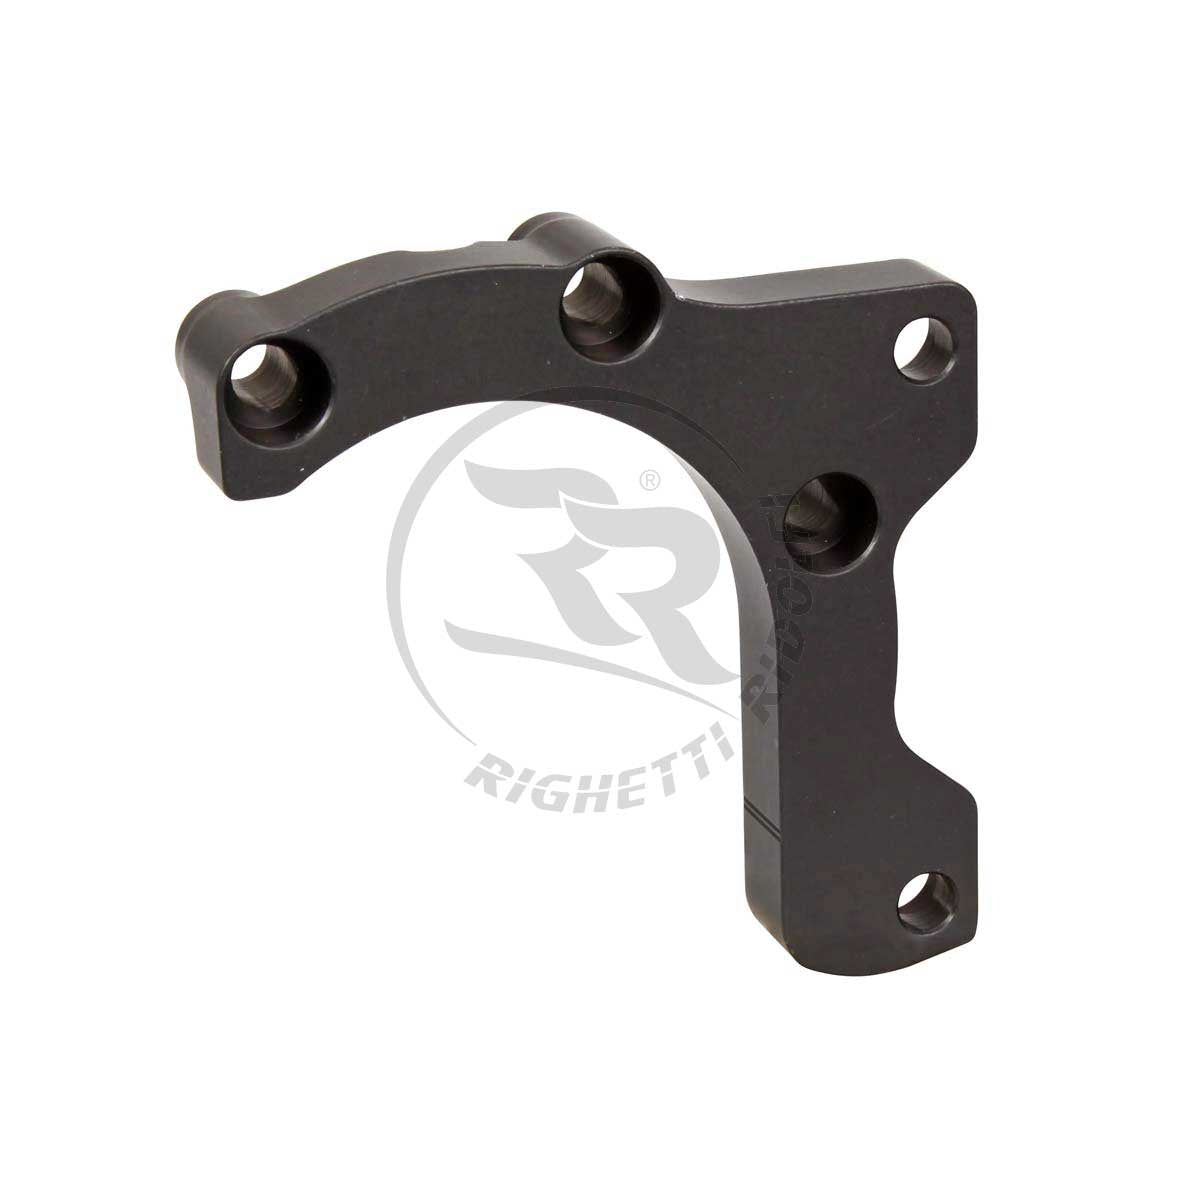 Righetti Ridolfi Brake Caliper Support Black